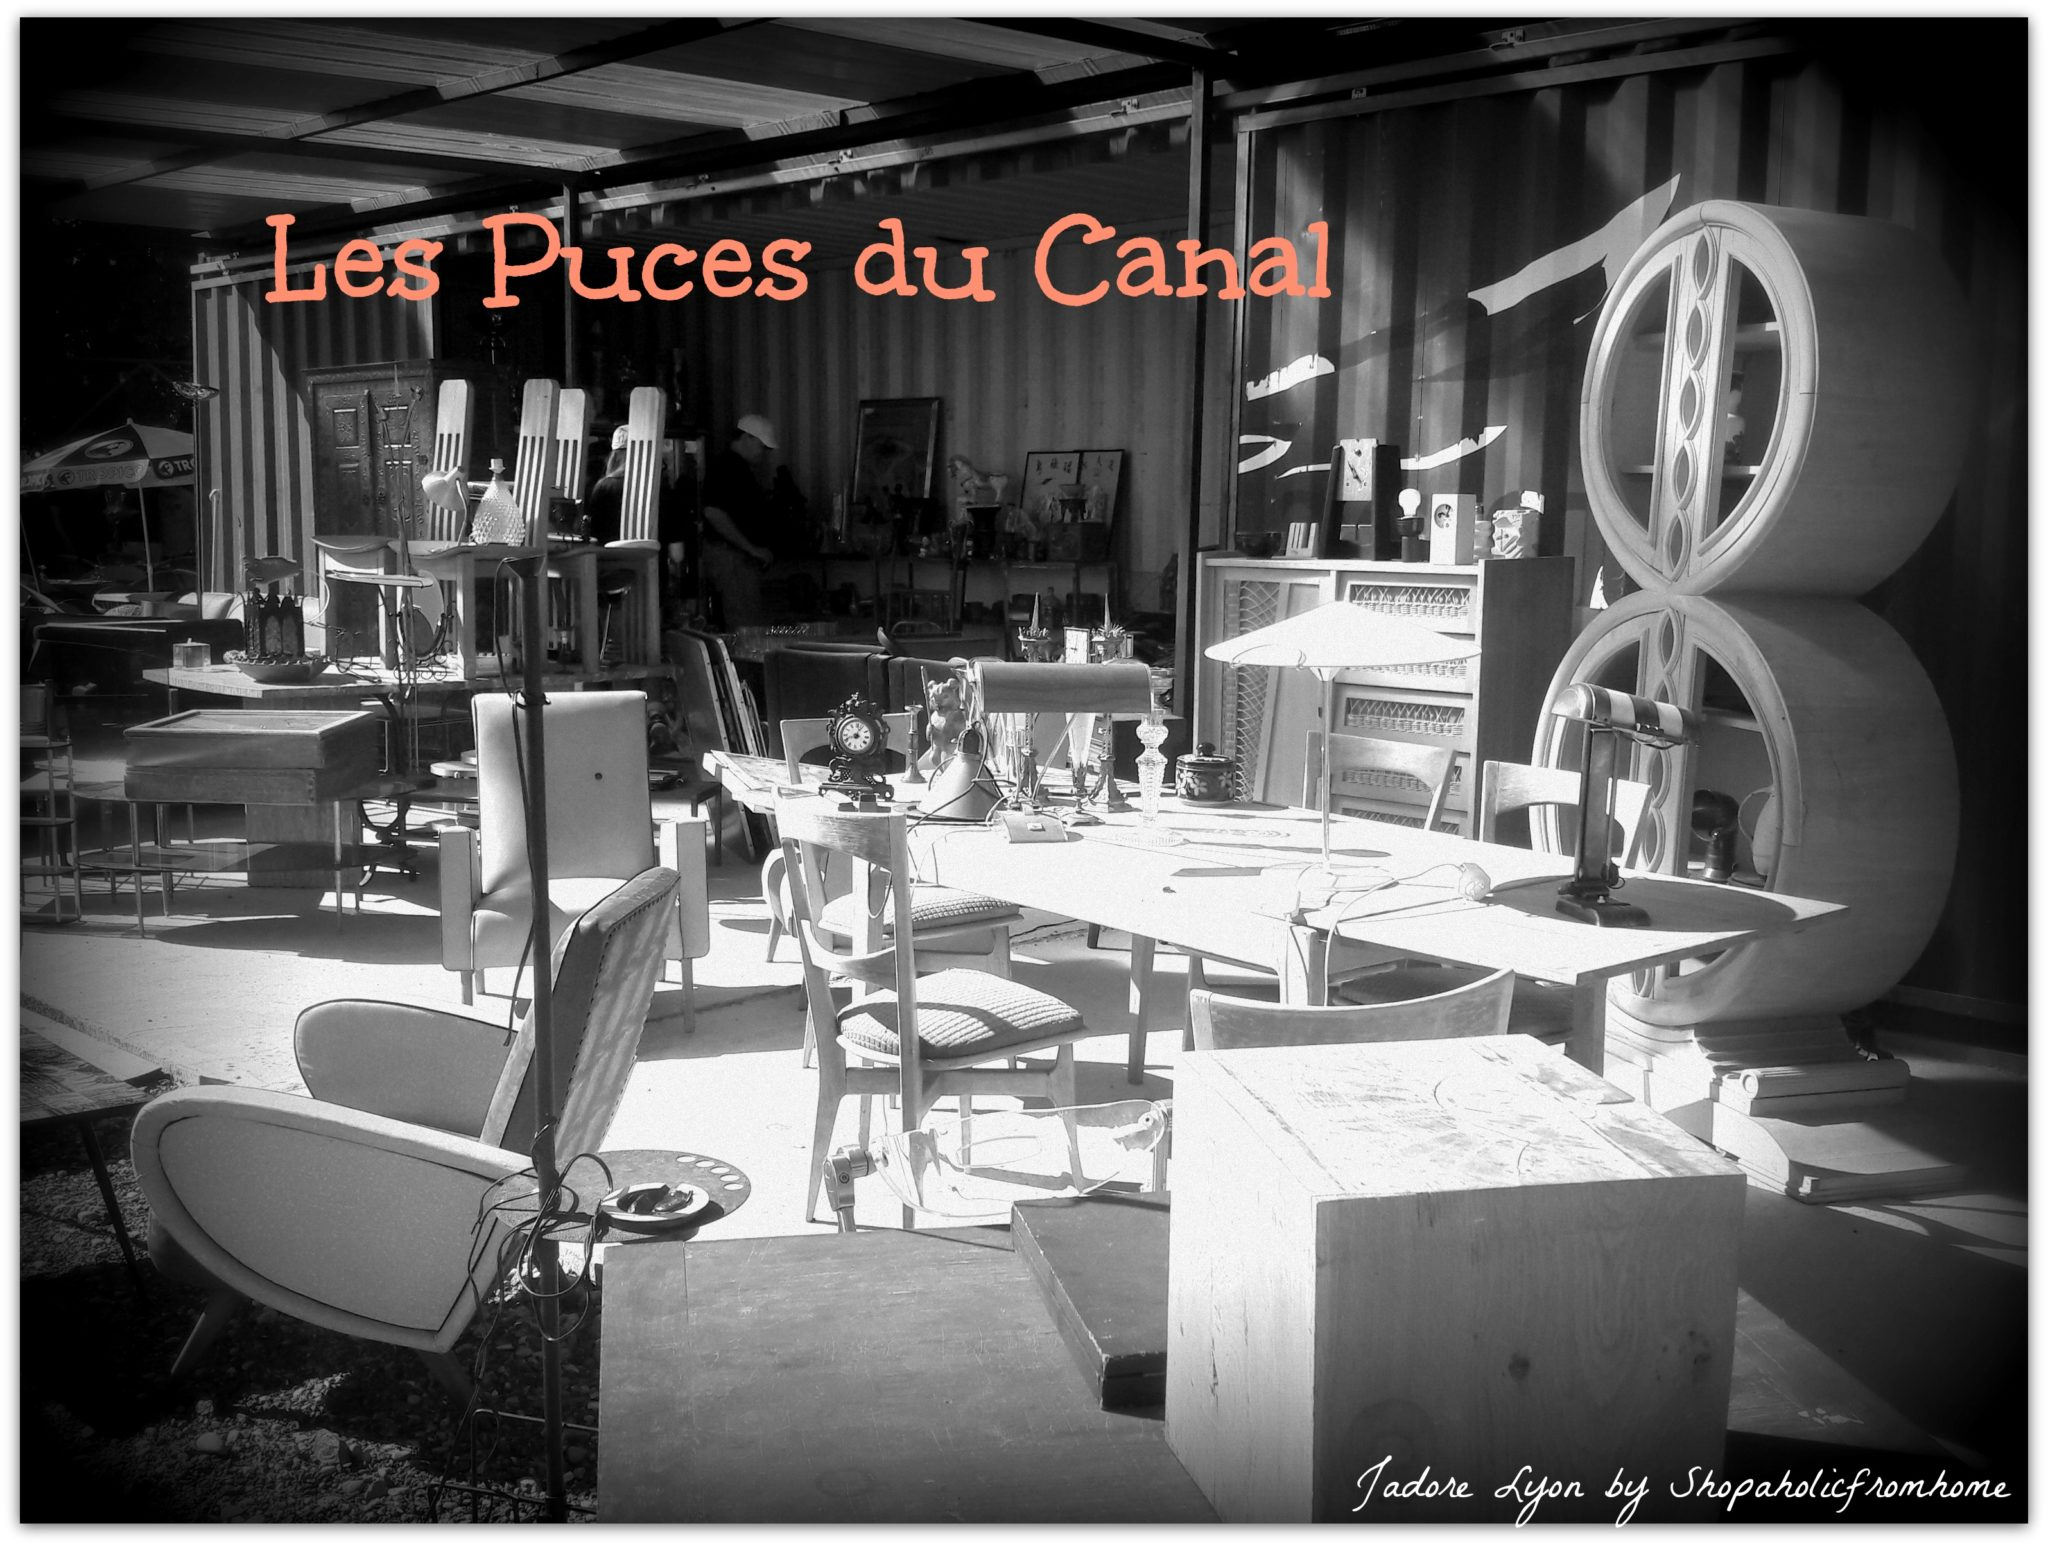 The best places to do creative and unusual shopping in lyon jadorelyon - Les puces du canal lyon ...